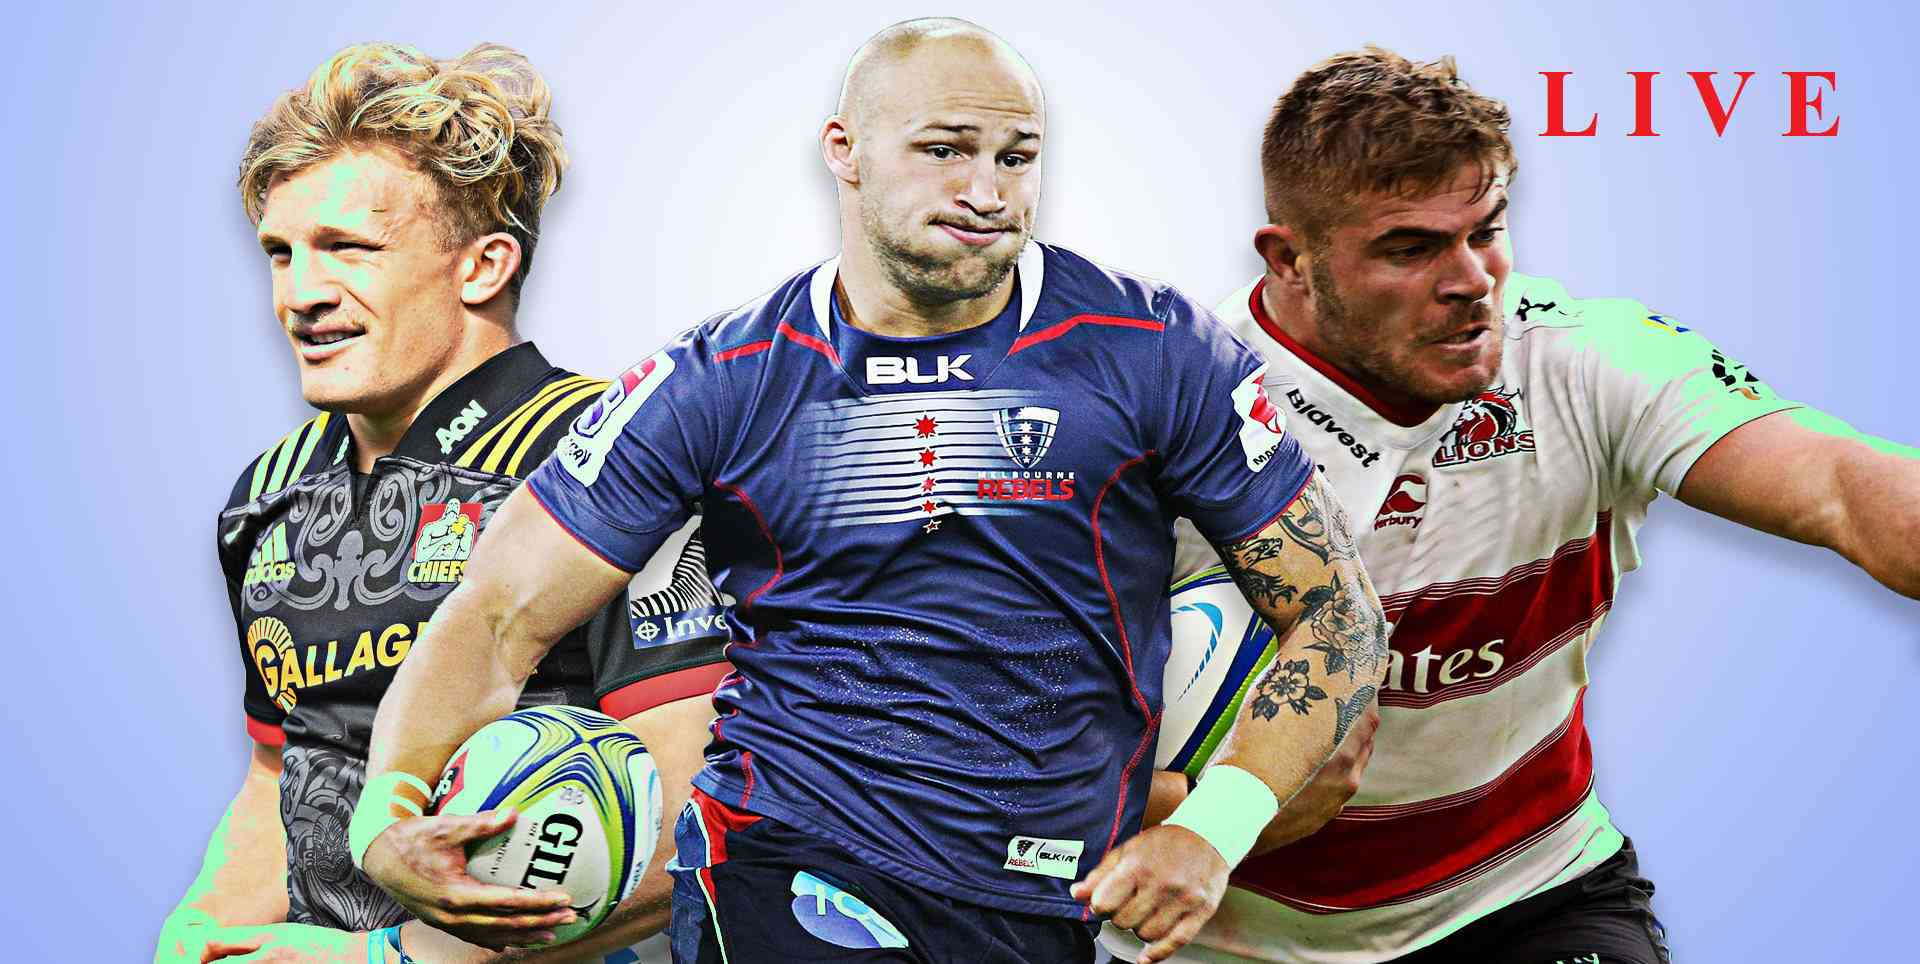 live-rugby-cardiff-blues-vs-ulster